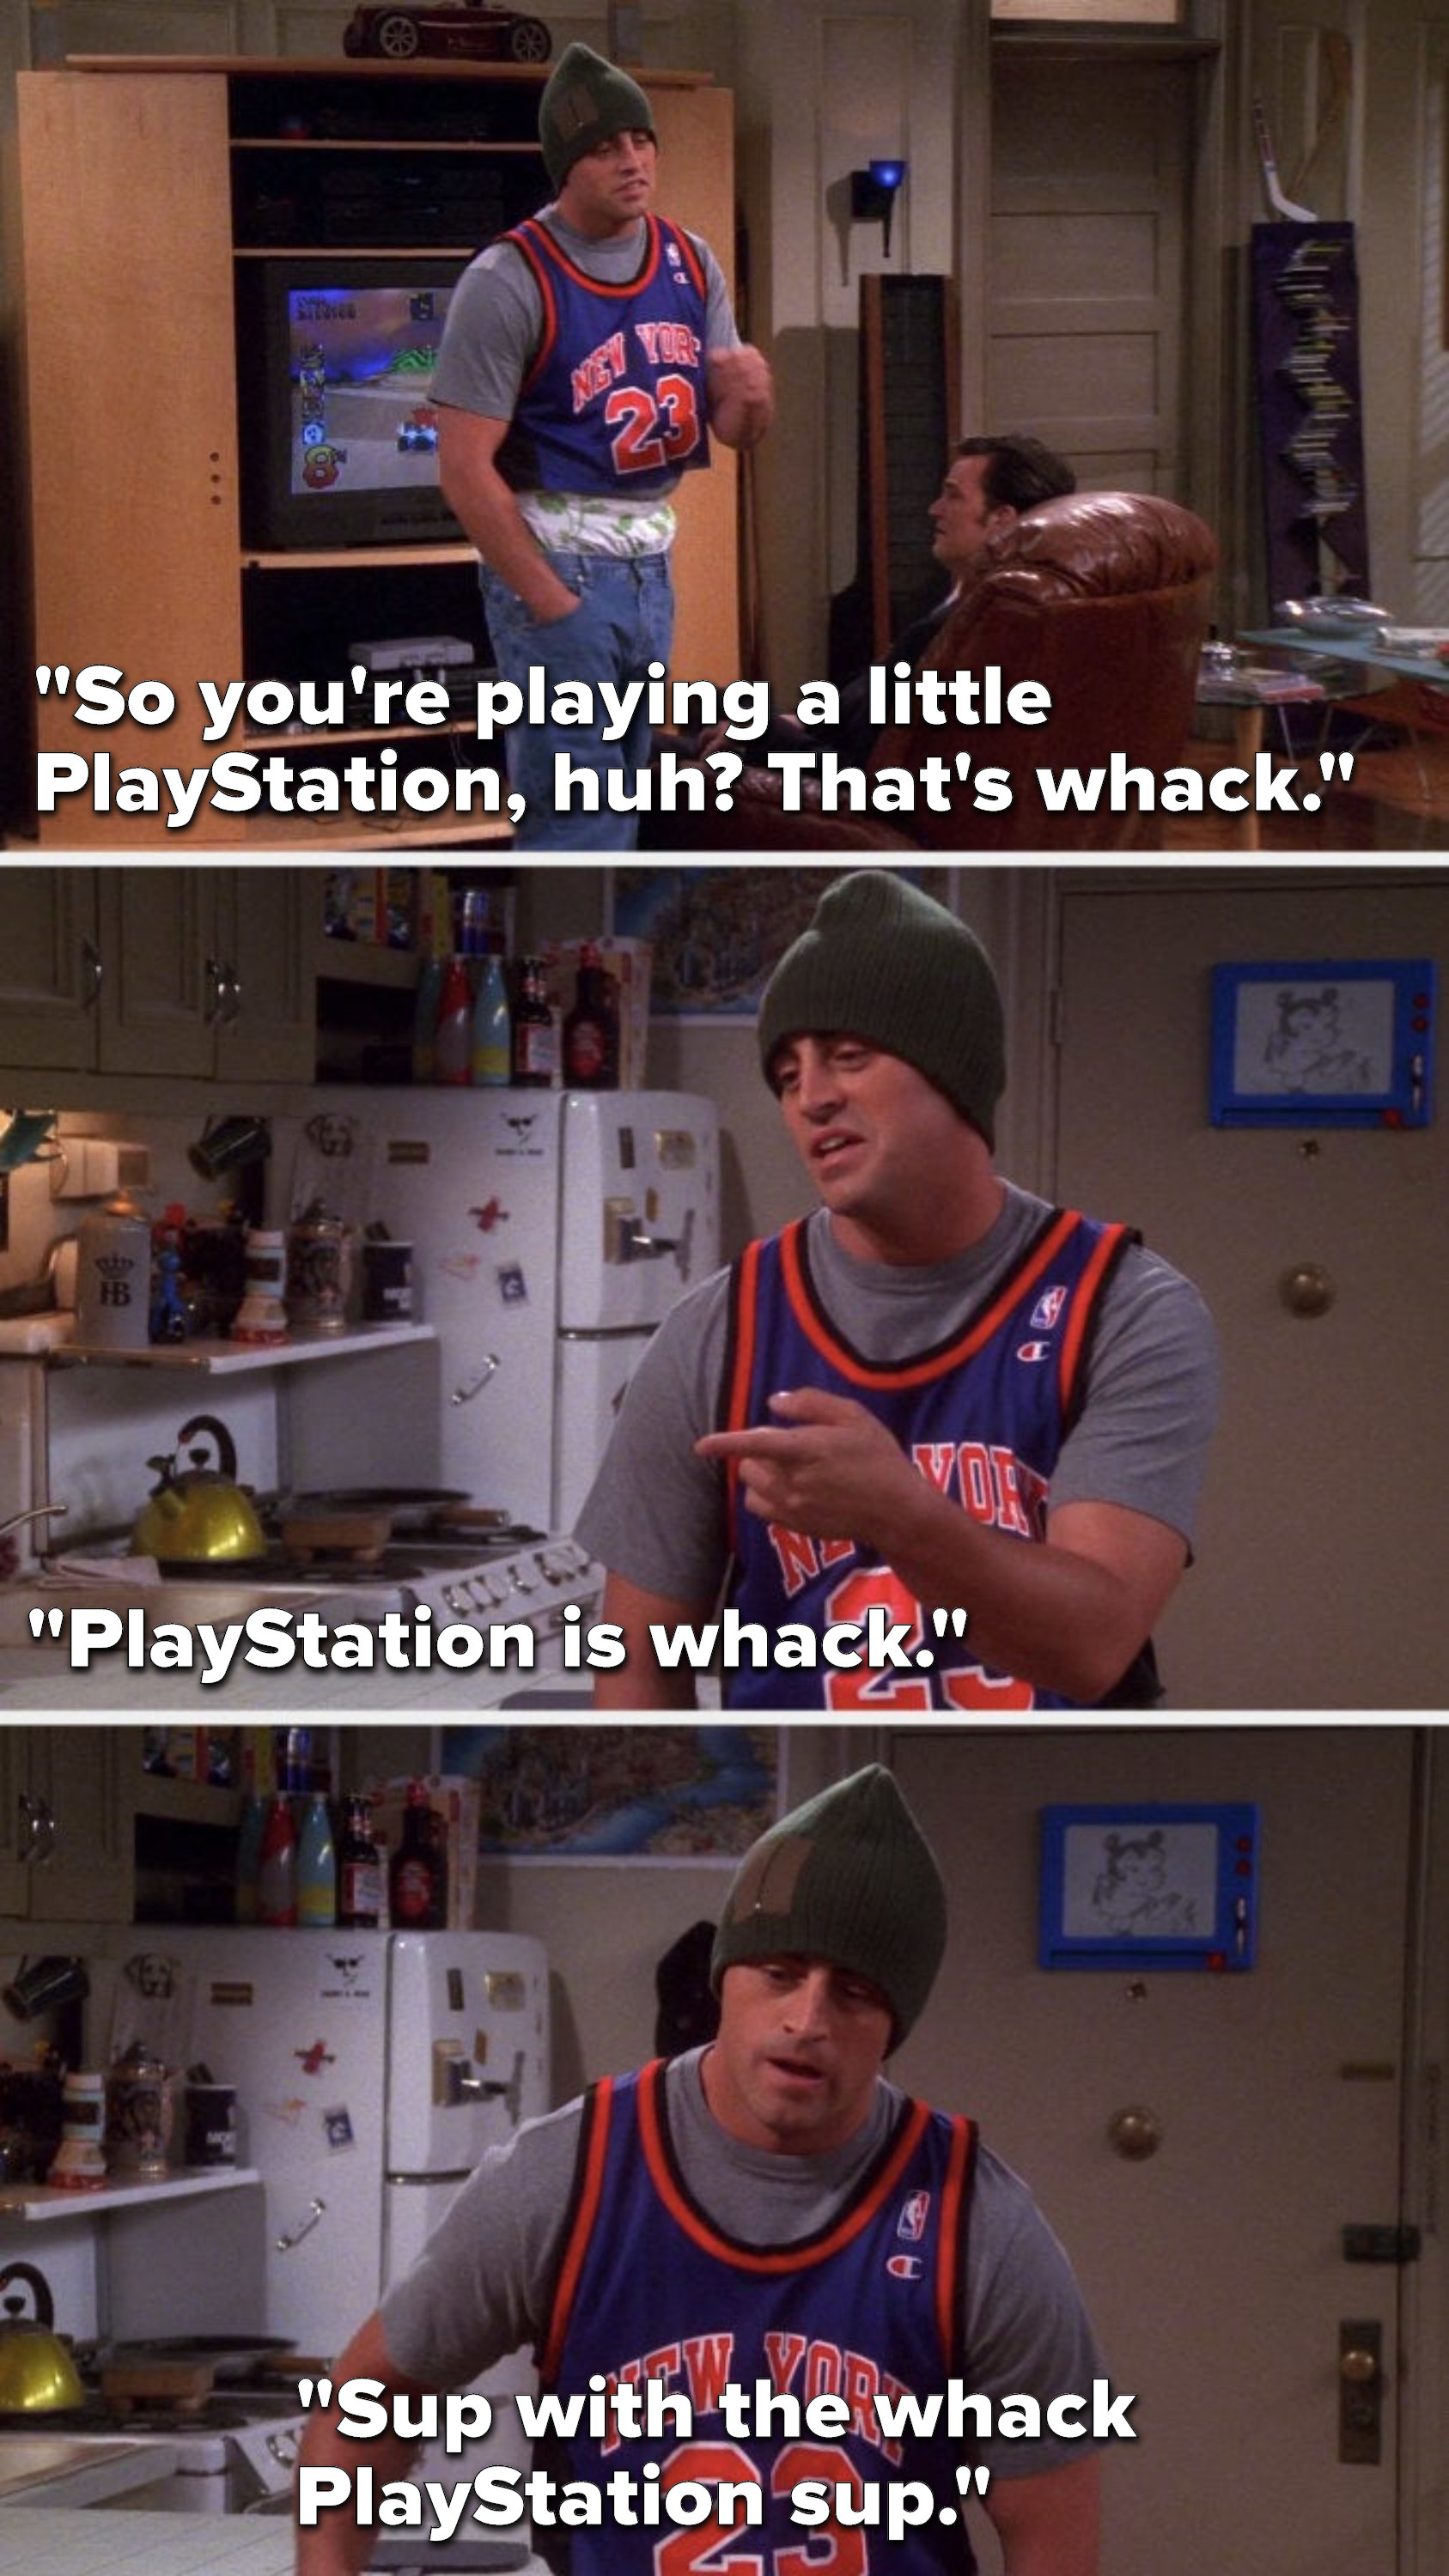 """Joey says, """"So you're playing a little PlayStation, huh, that's whack, PlayStation is whack, sup with the whack PlayStation sup"""""""